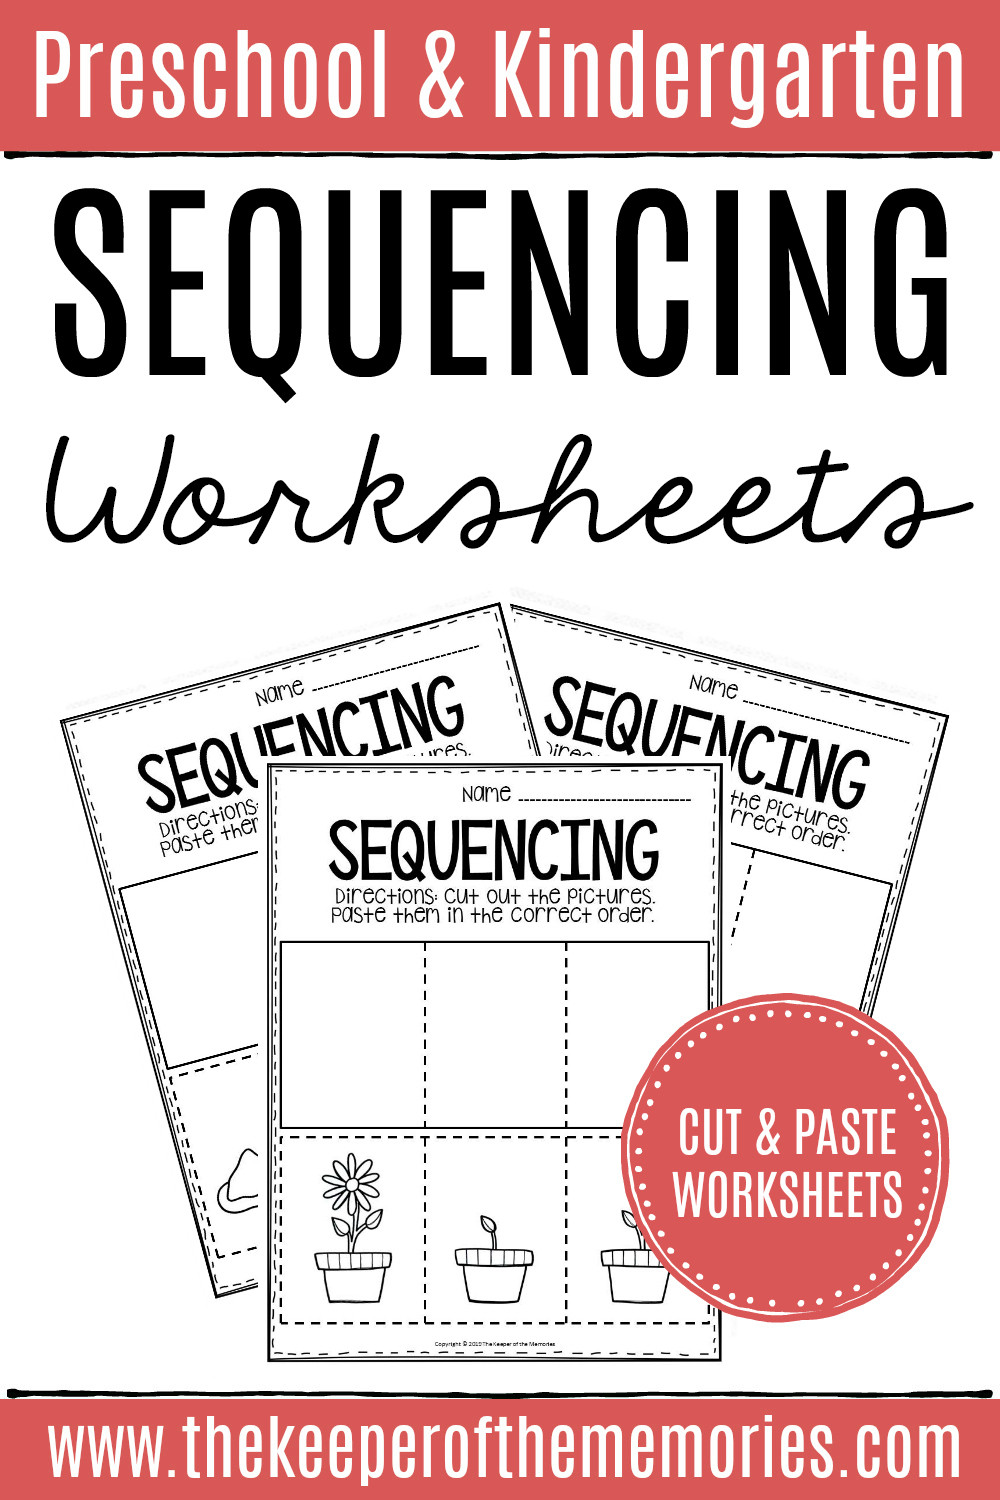 Kindergarten Sequence Worksheets 3 Step Sequencing Worksheets the Keeper Of the Memories